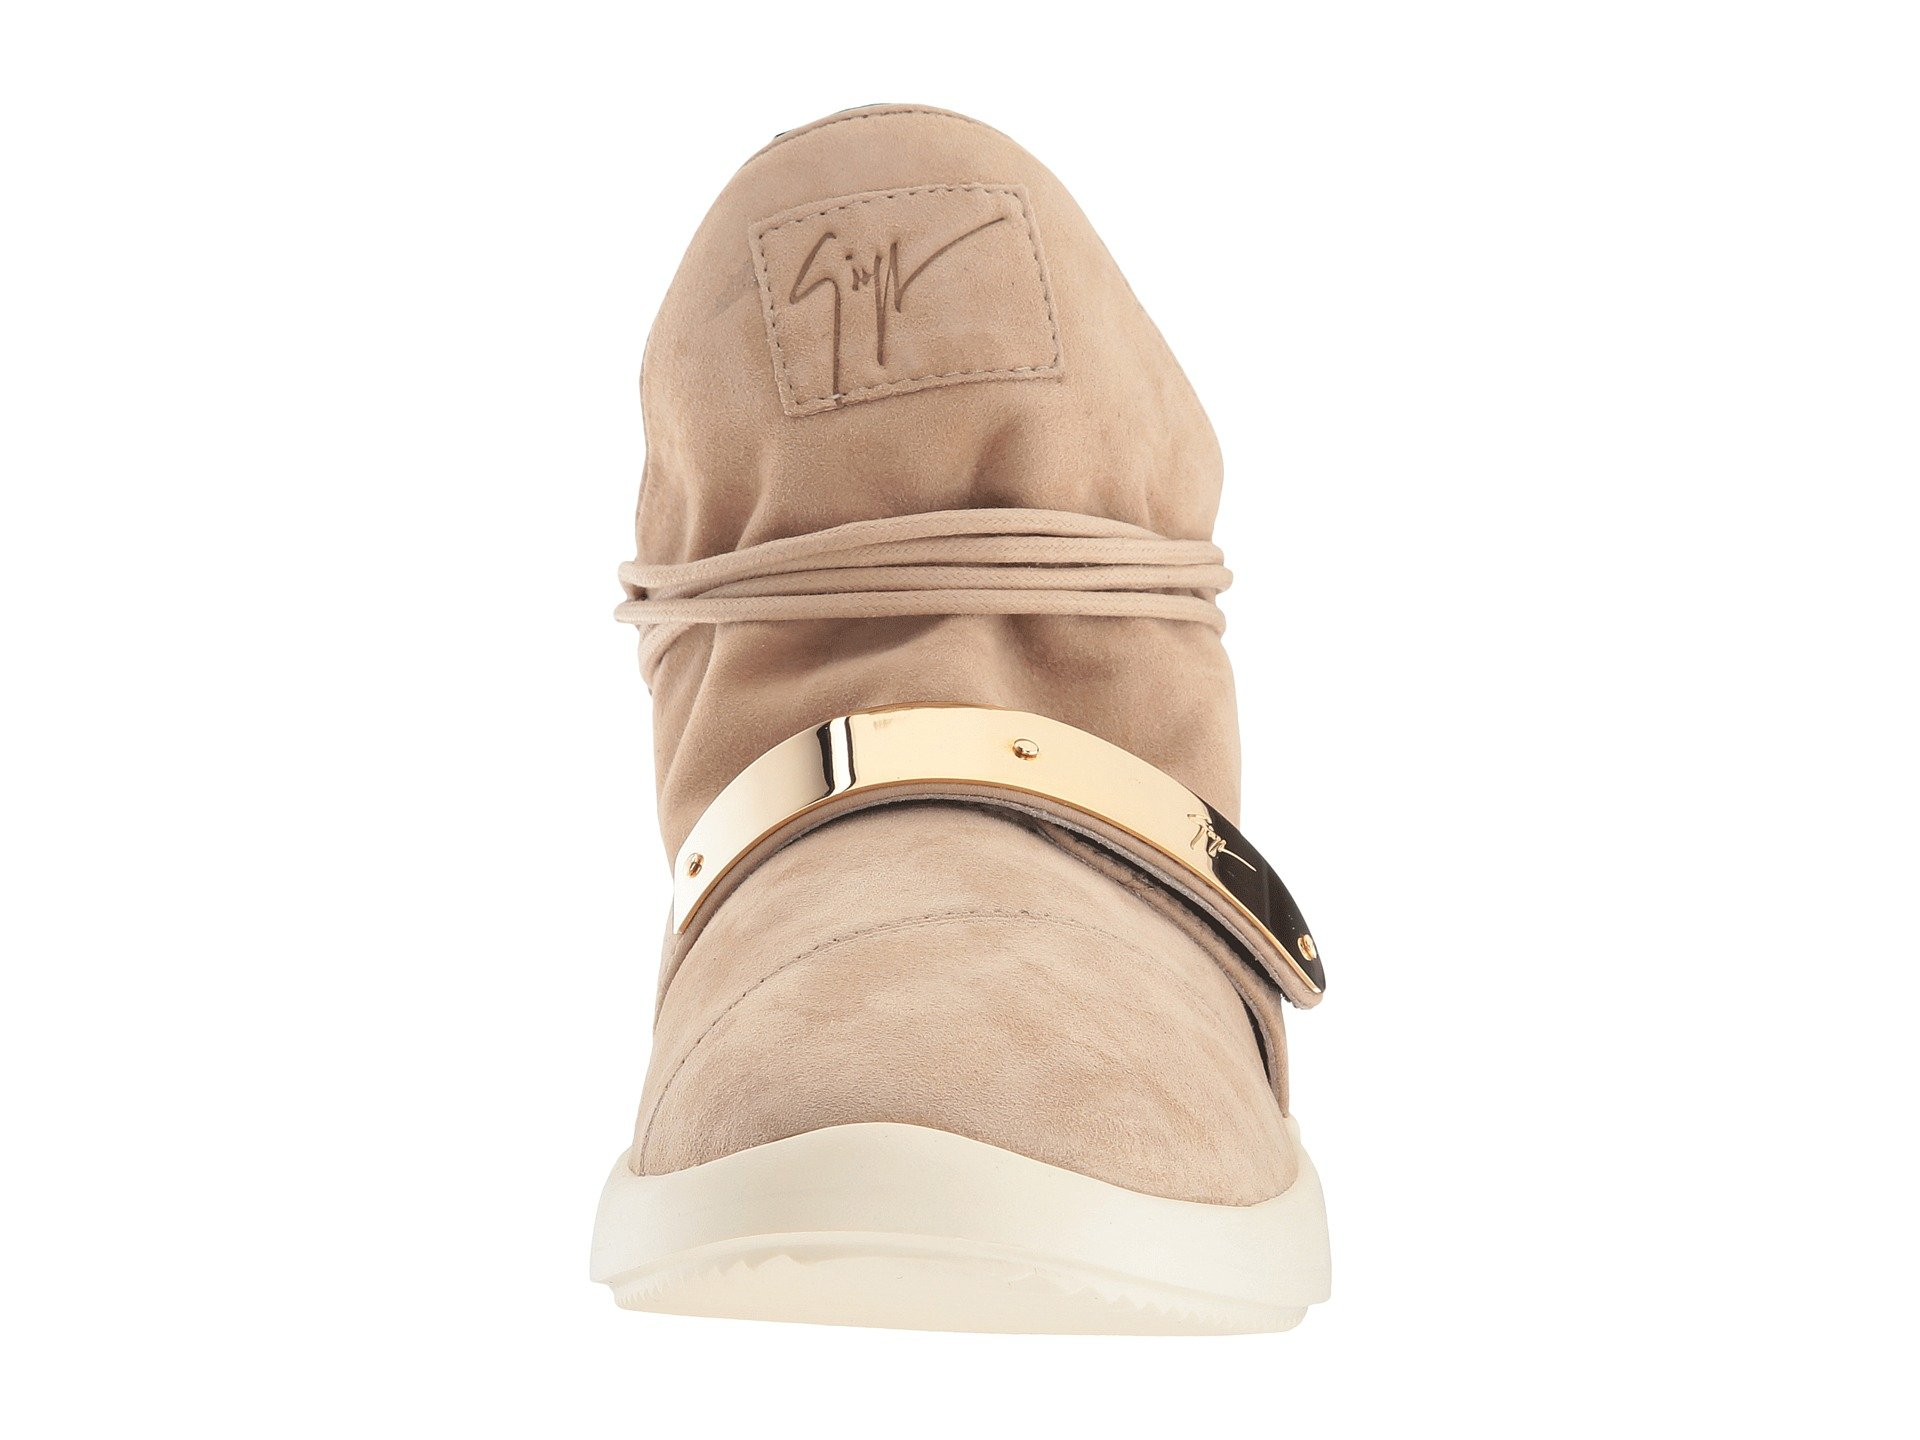 Giuseppe ZanottiSingles Suede Mid Top Sneaker cAie4h